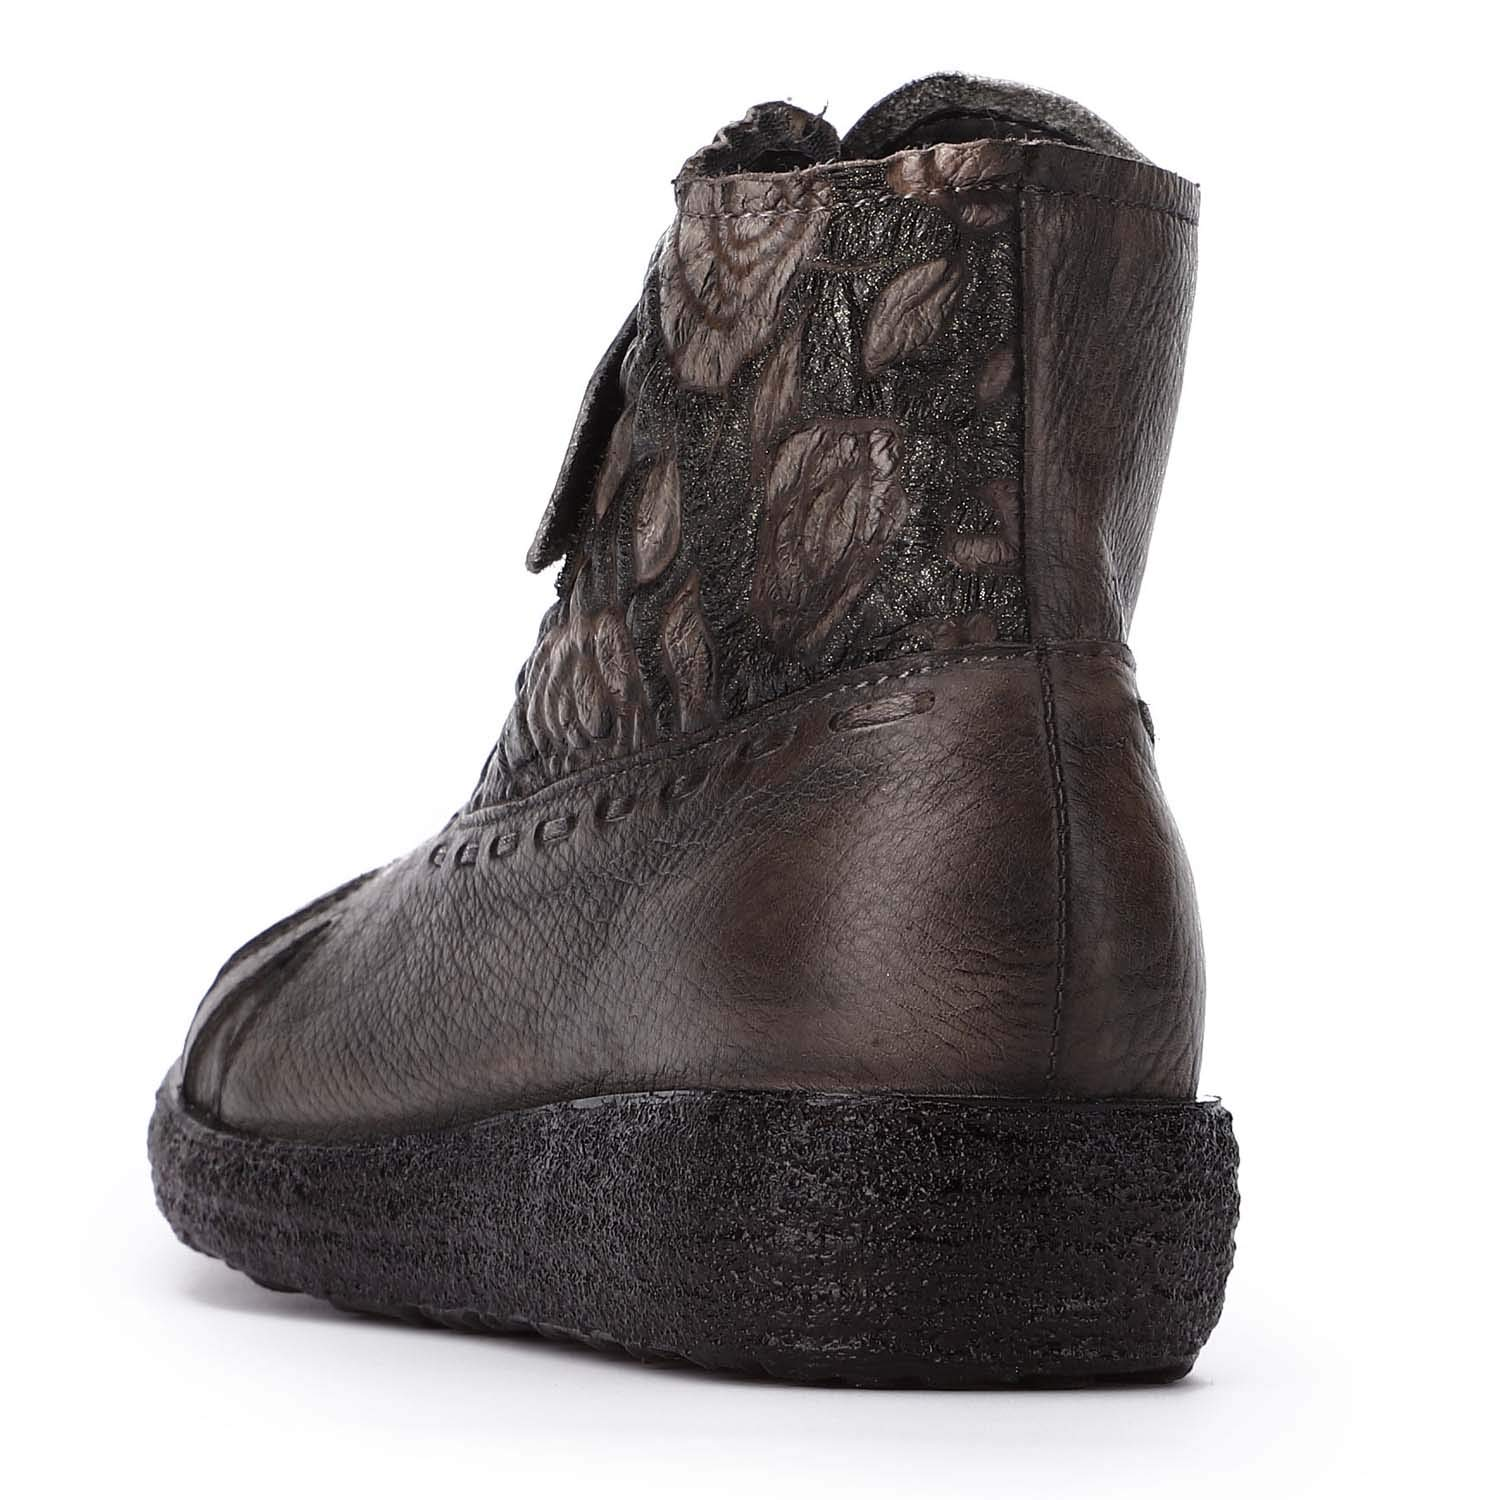 Shoe house Womens Nylon Ankle Boots Chelsea Vintage Embossed Ankle Boots Womens Leather Non-Slip Boots